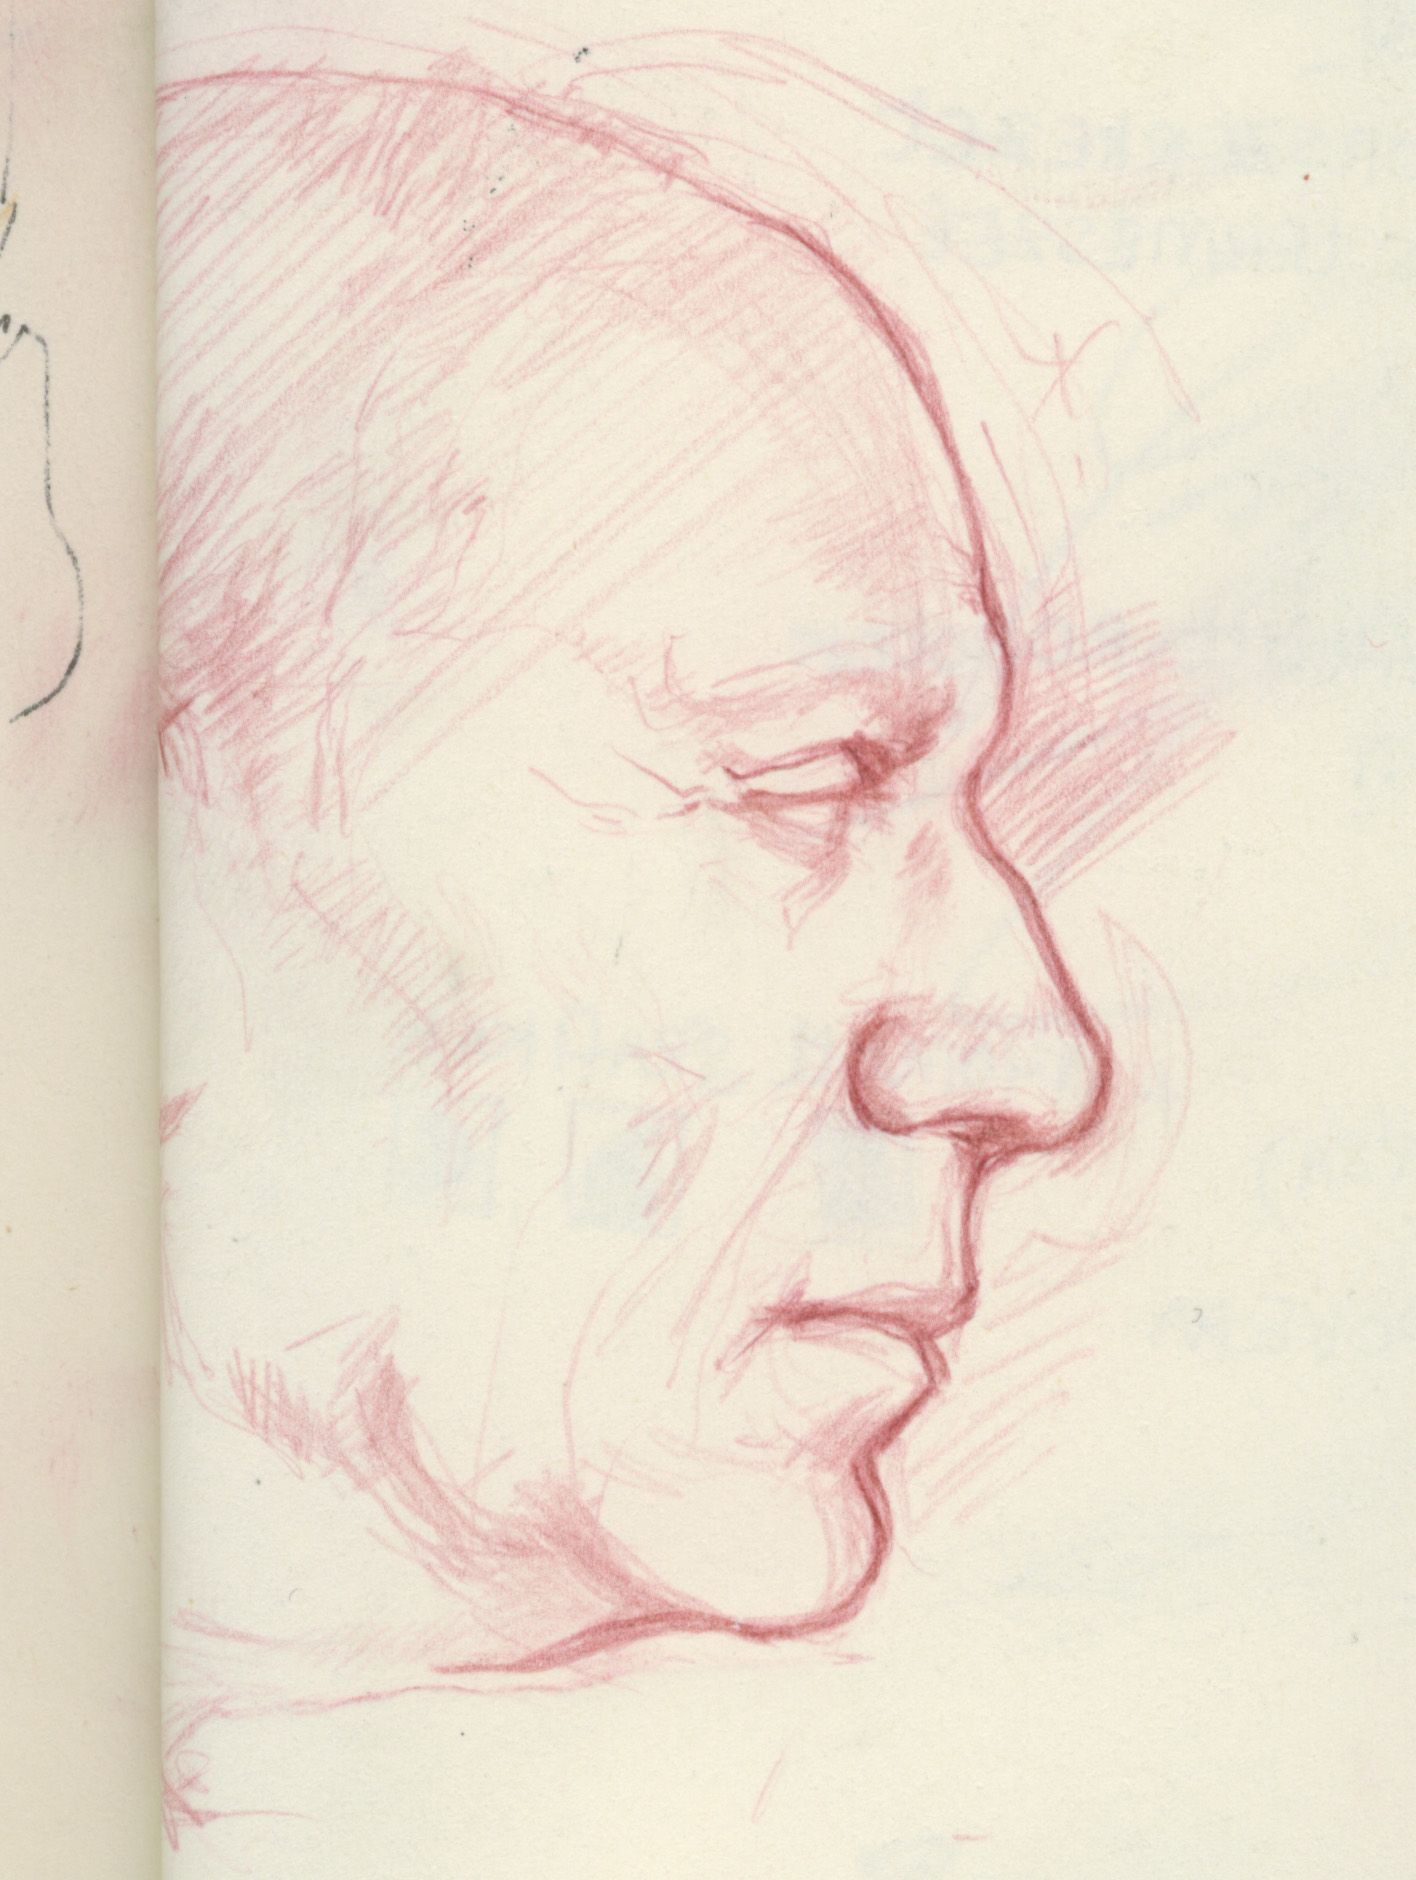 sketch portrait of Picasso - colored pencil on paper Virag ...